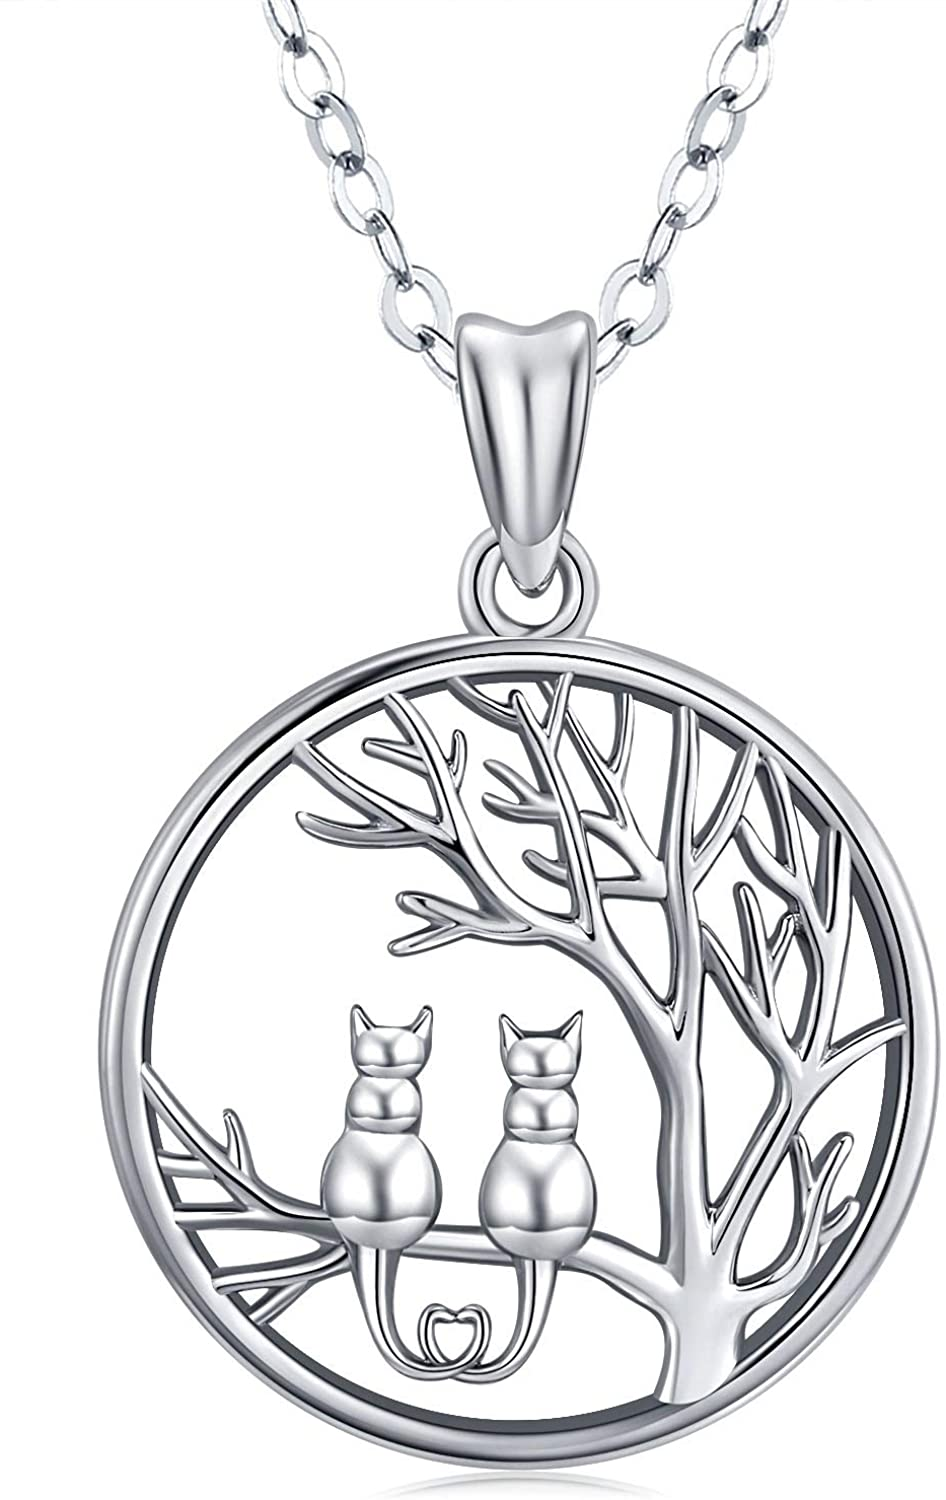 Friggem Cat Necklace,Sterling Silver Double Cats Chain On The Tree Necklace,Round Tree of Life Necklace Cat Pendant 18